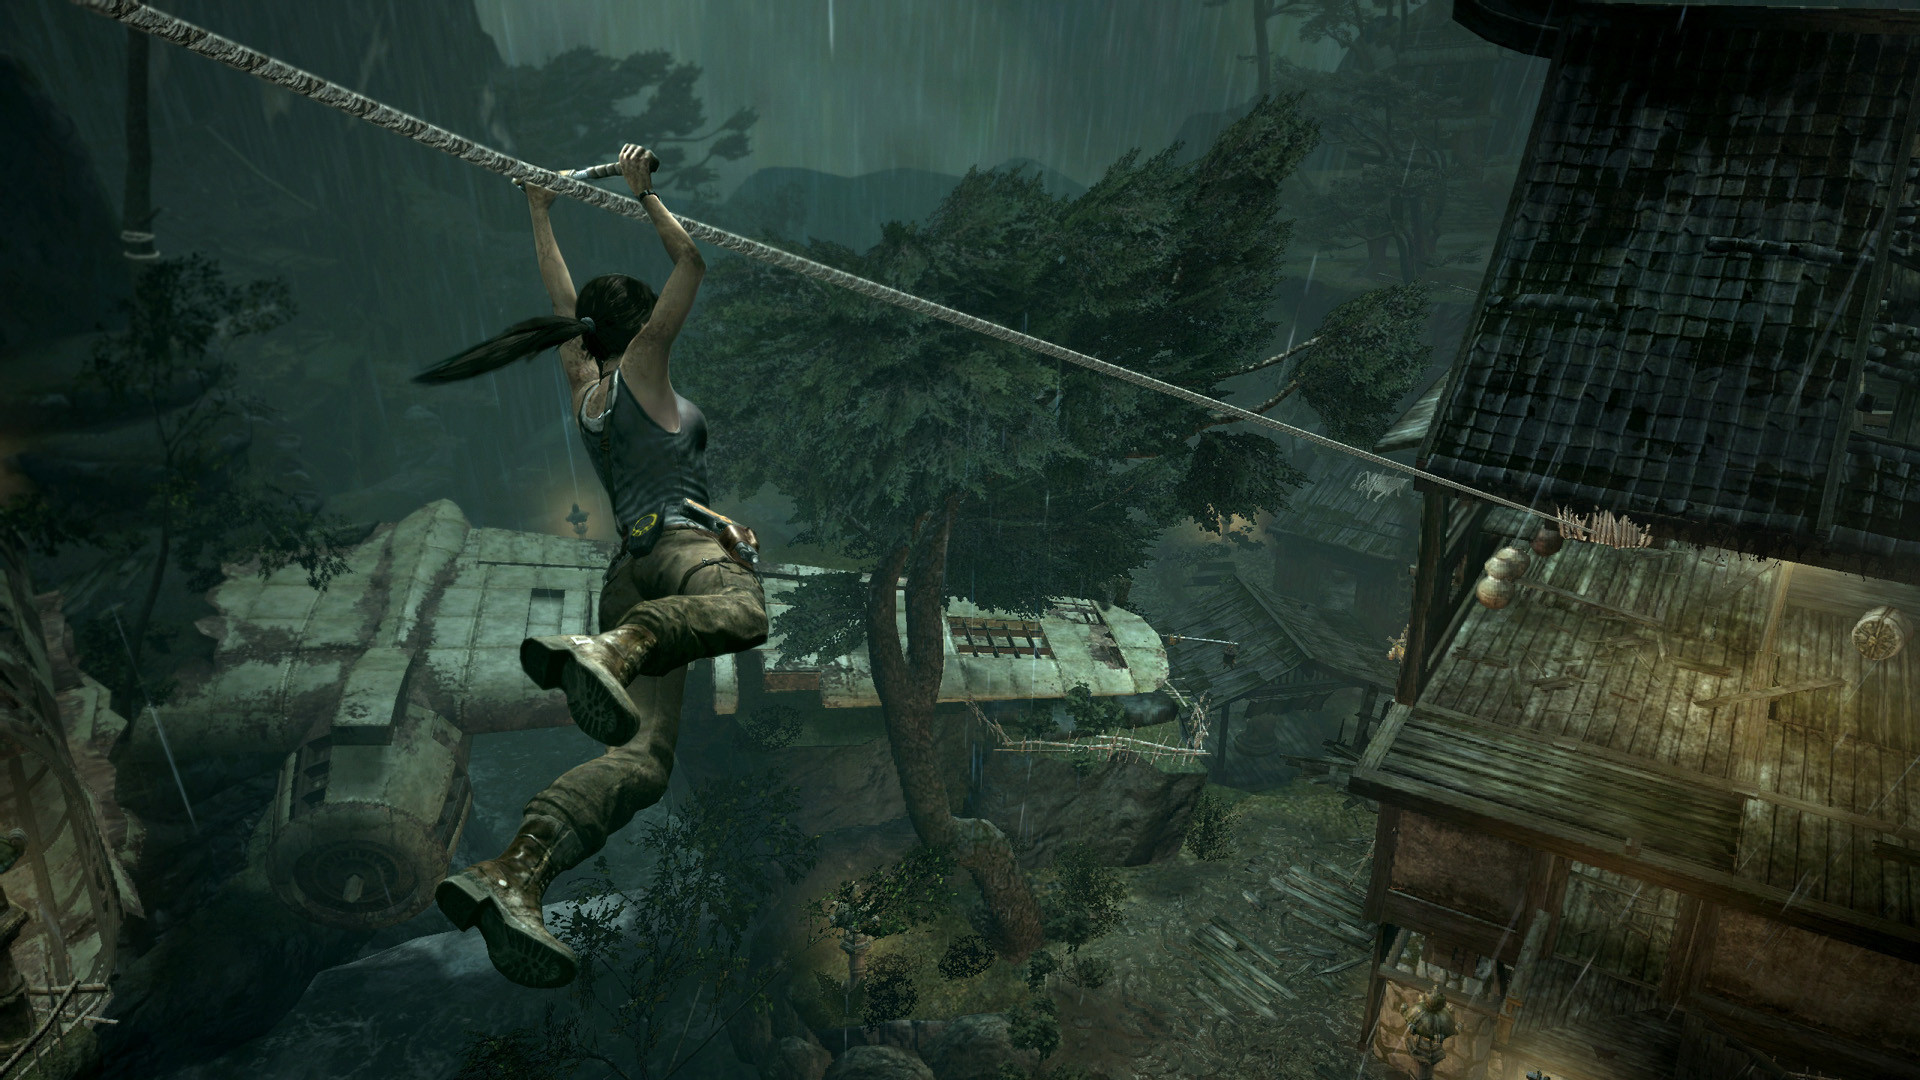 tomb raider video